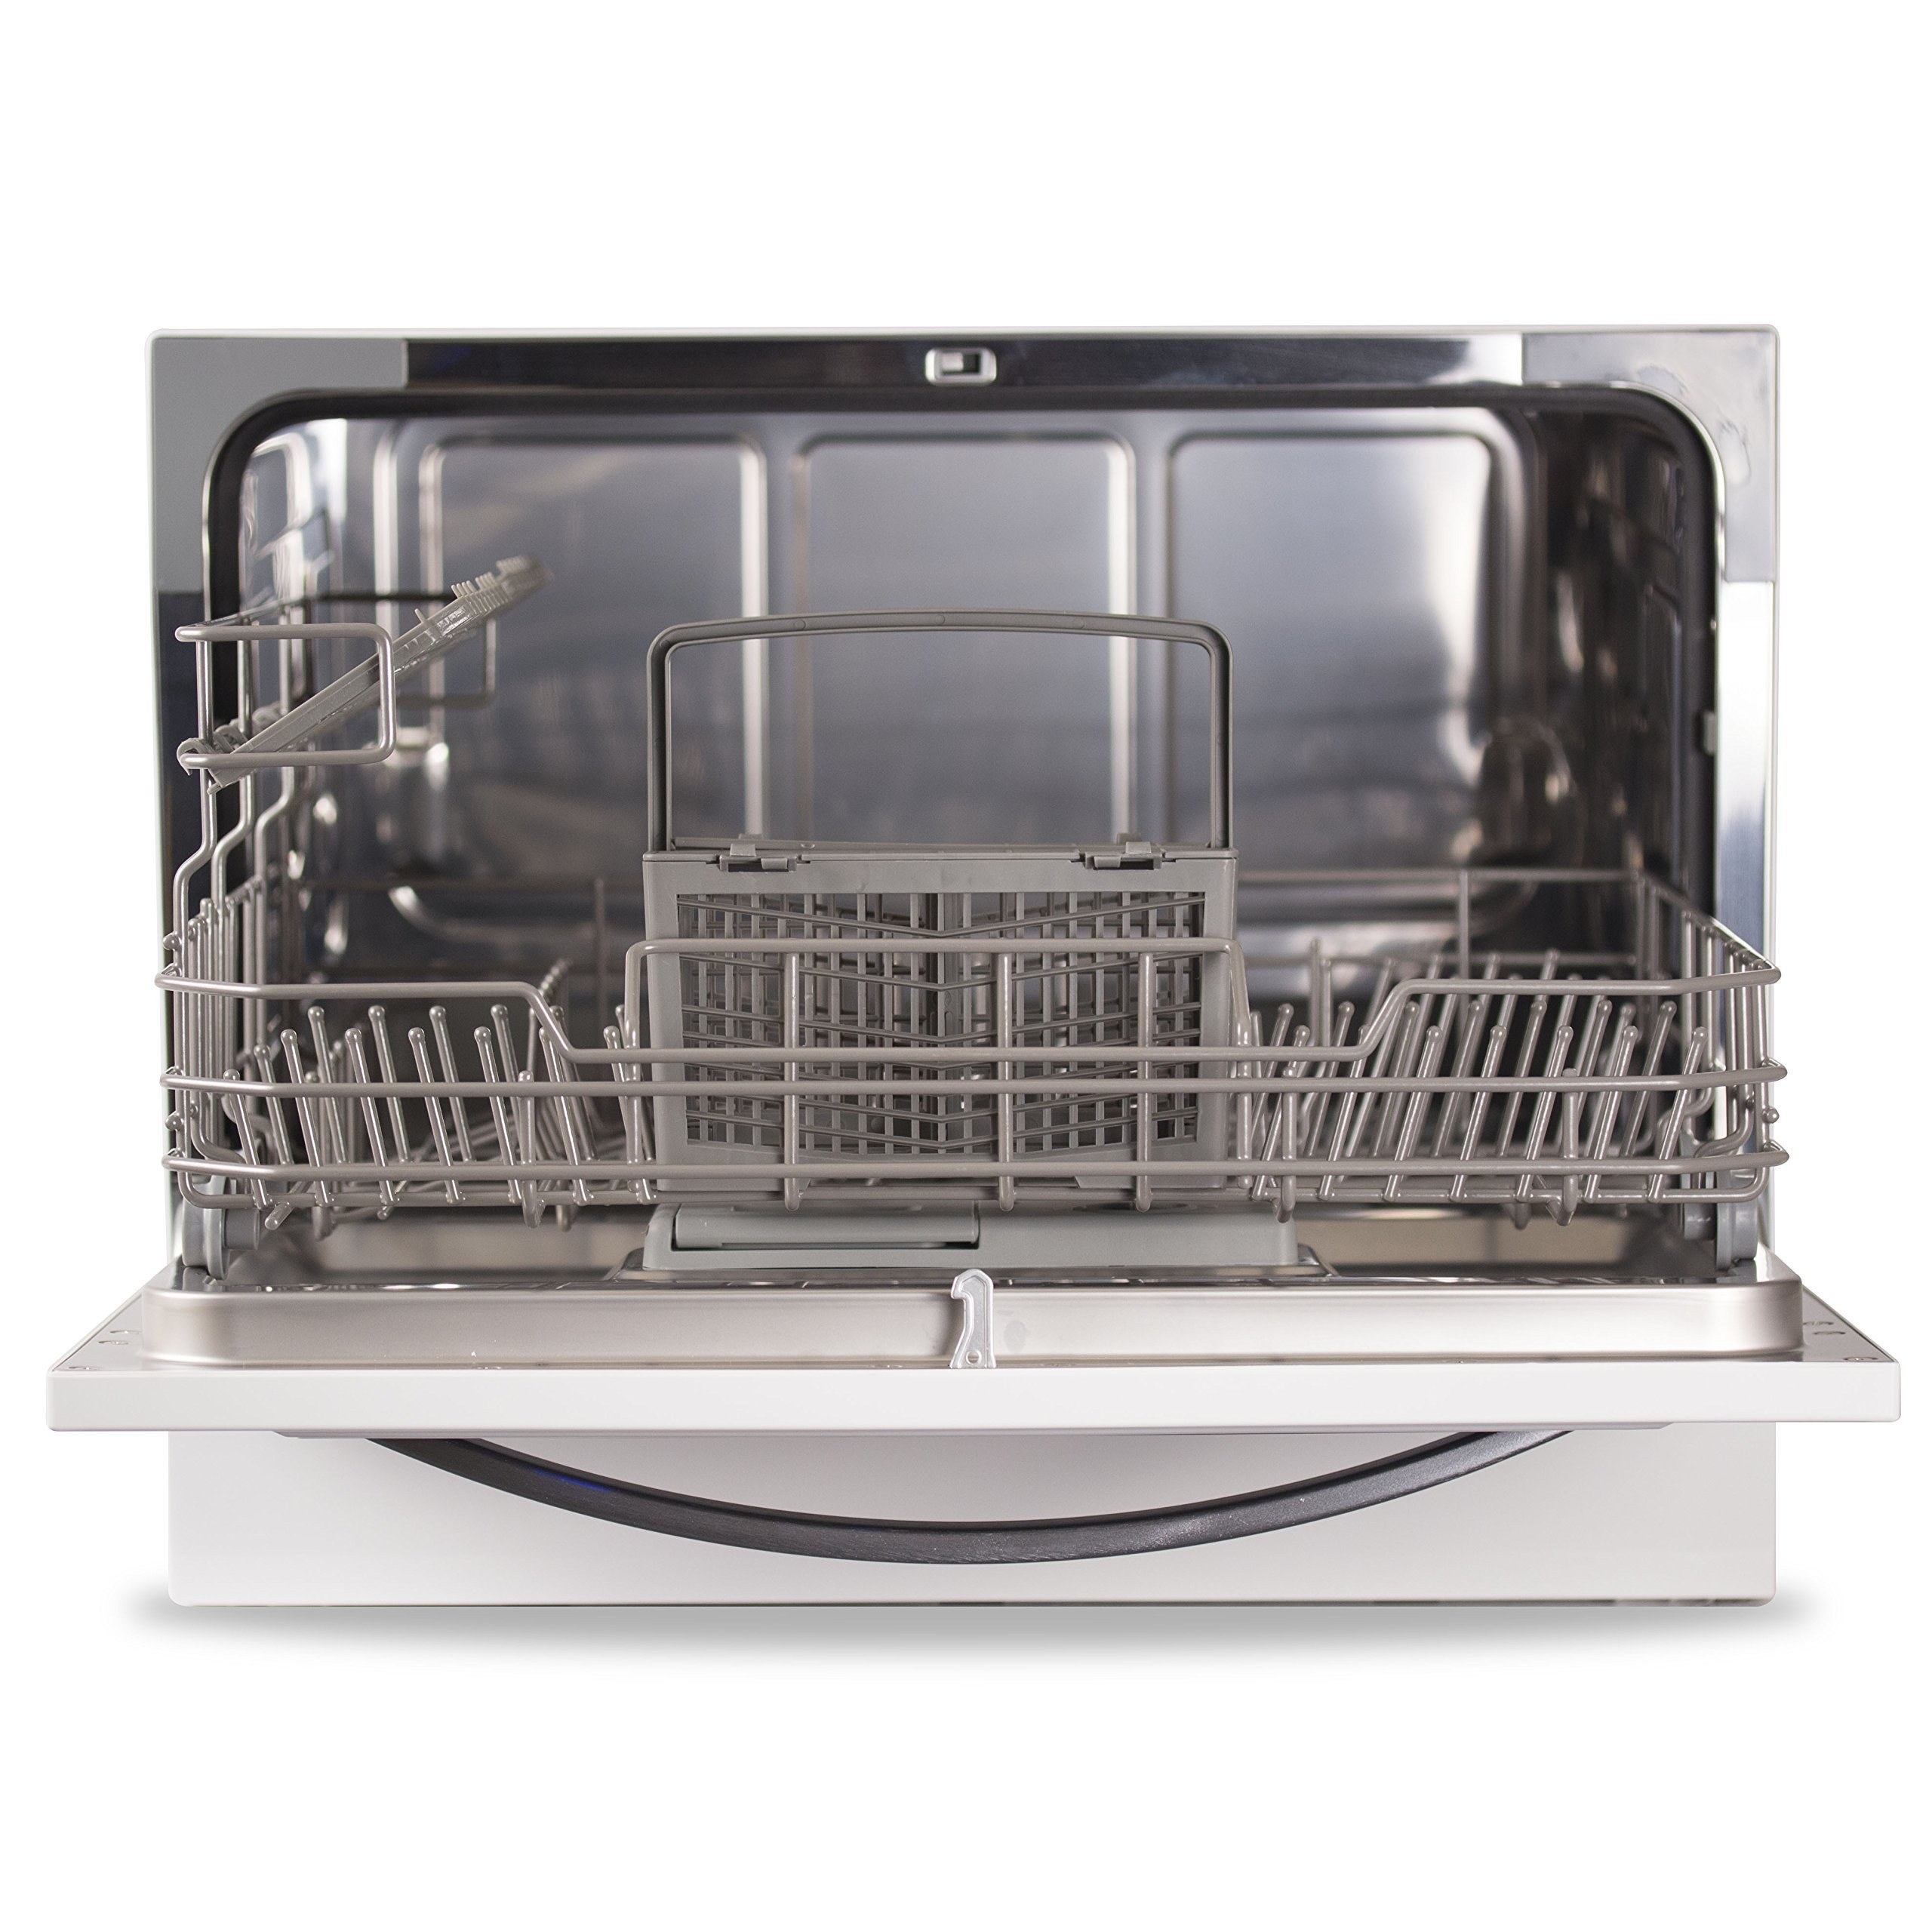 place dishwasher countertops countertop of sink kitchen reviews ideas archaicawful koldfront small full size with clogged epinions pictures